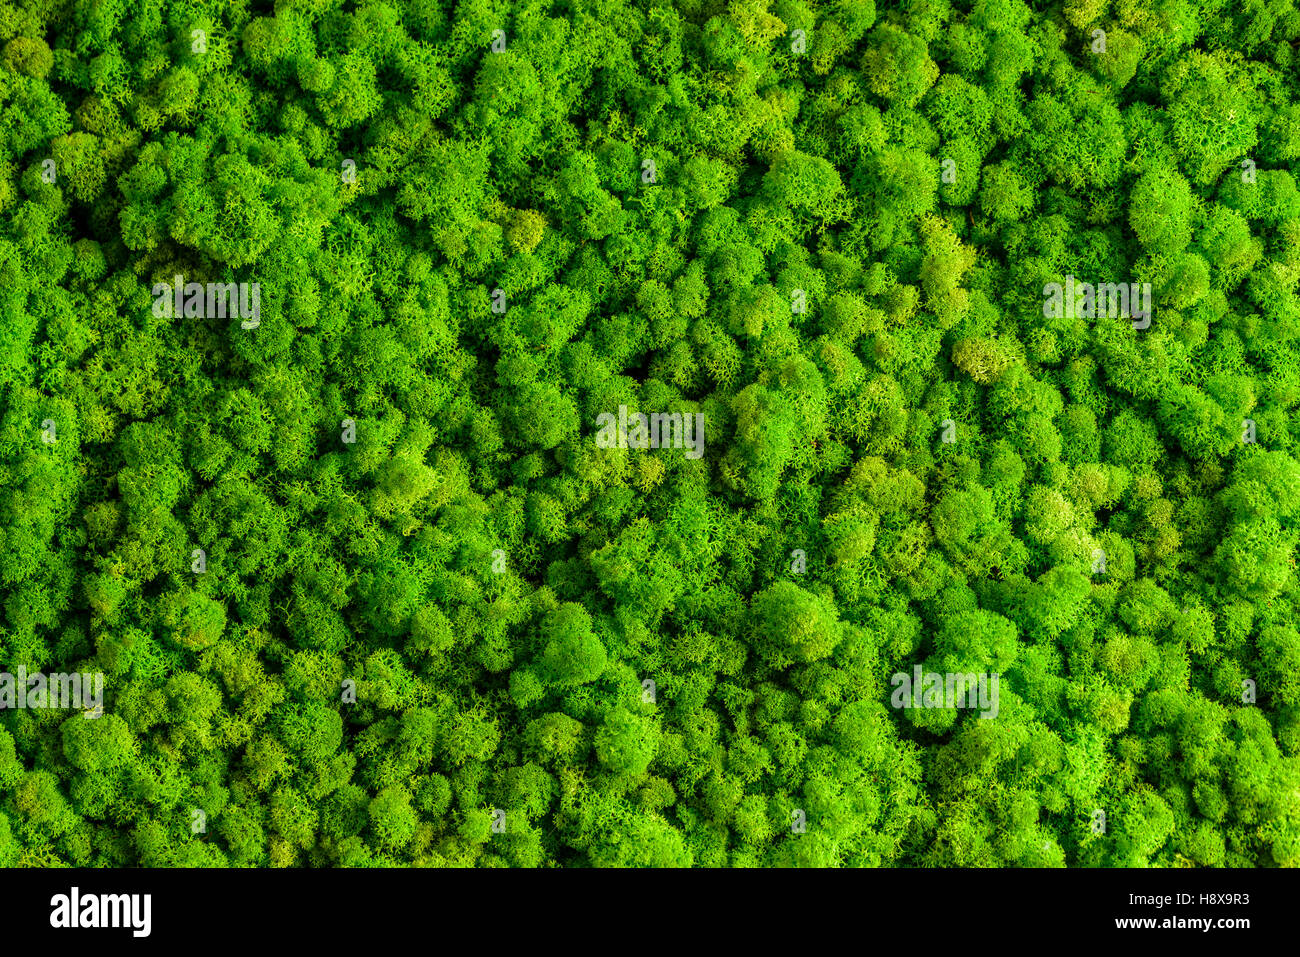 reindeer moss wall green wall decoration made of reindeer lichen stock photo 125968279 alamy. Black Bedroom Furniture Sets. Home Design Ideas